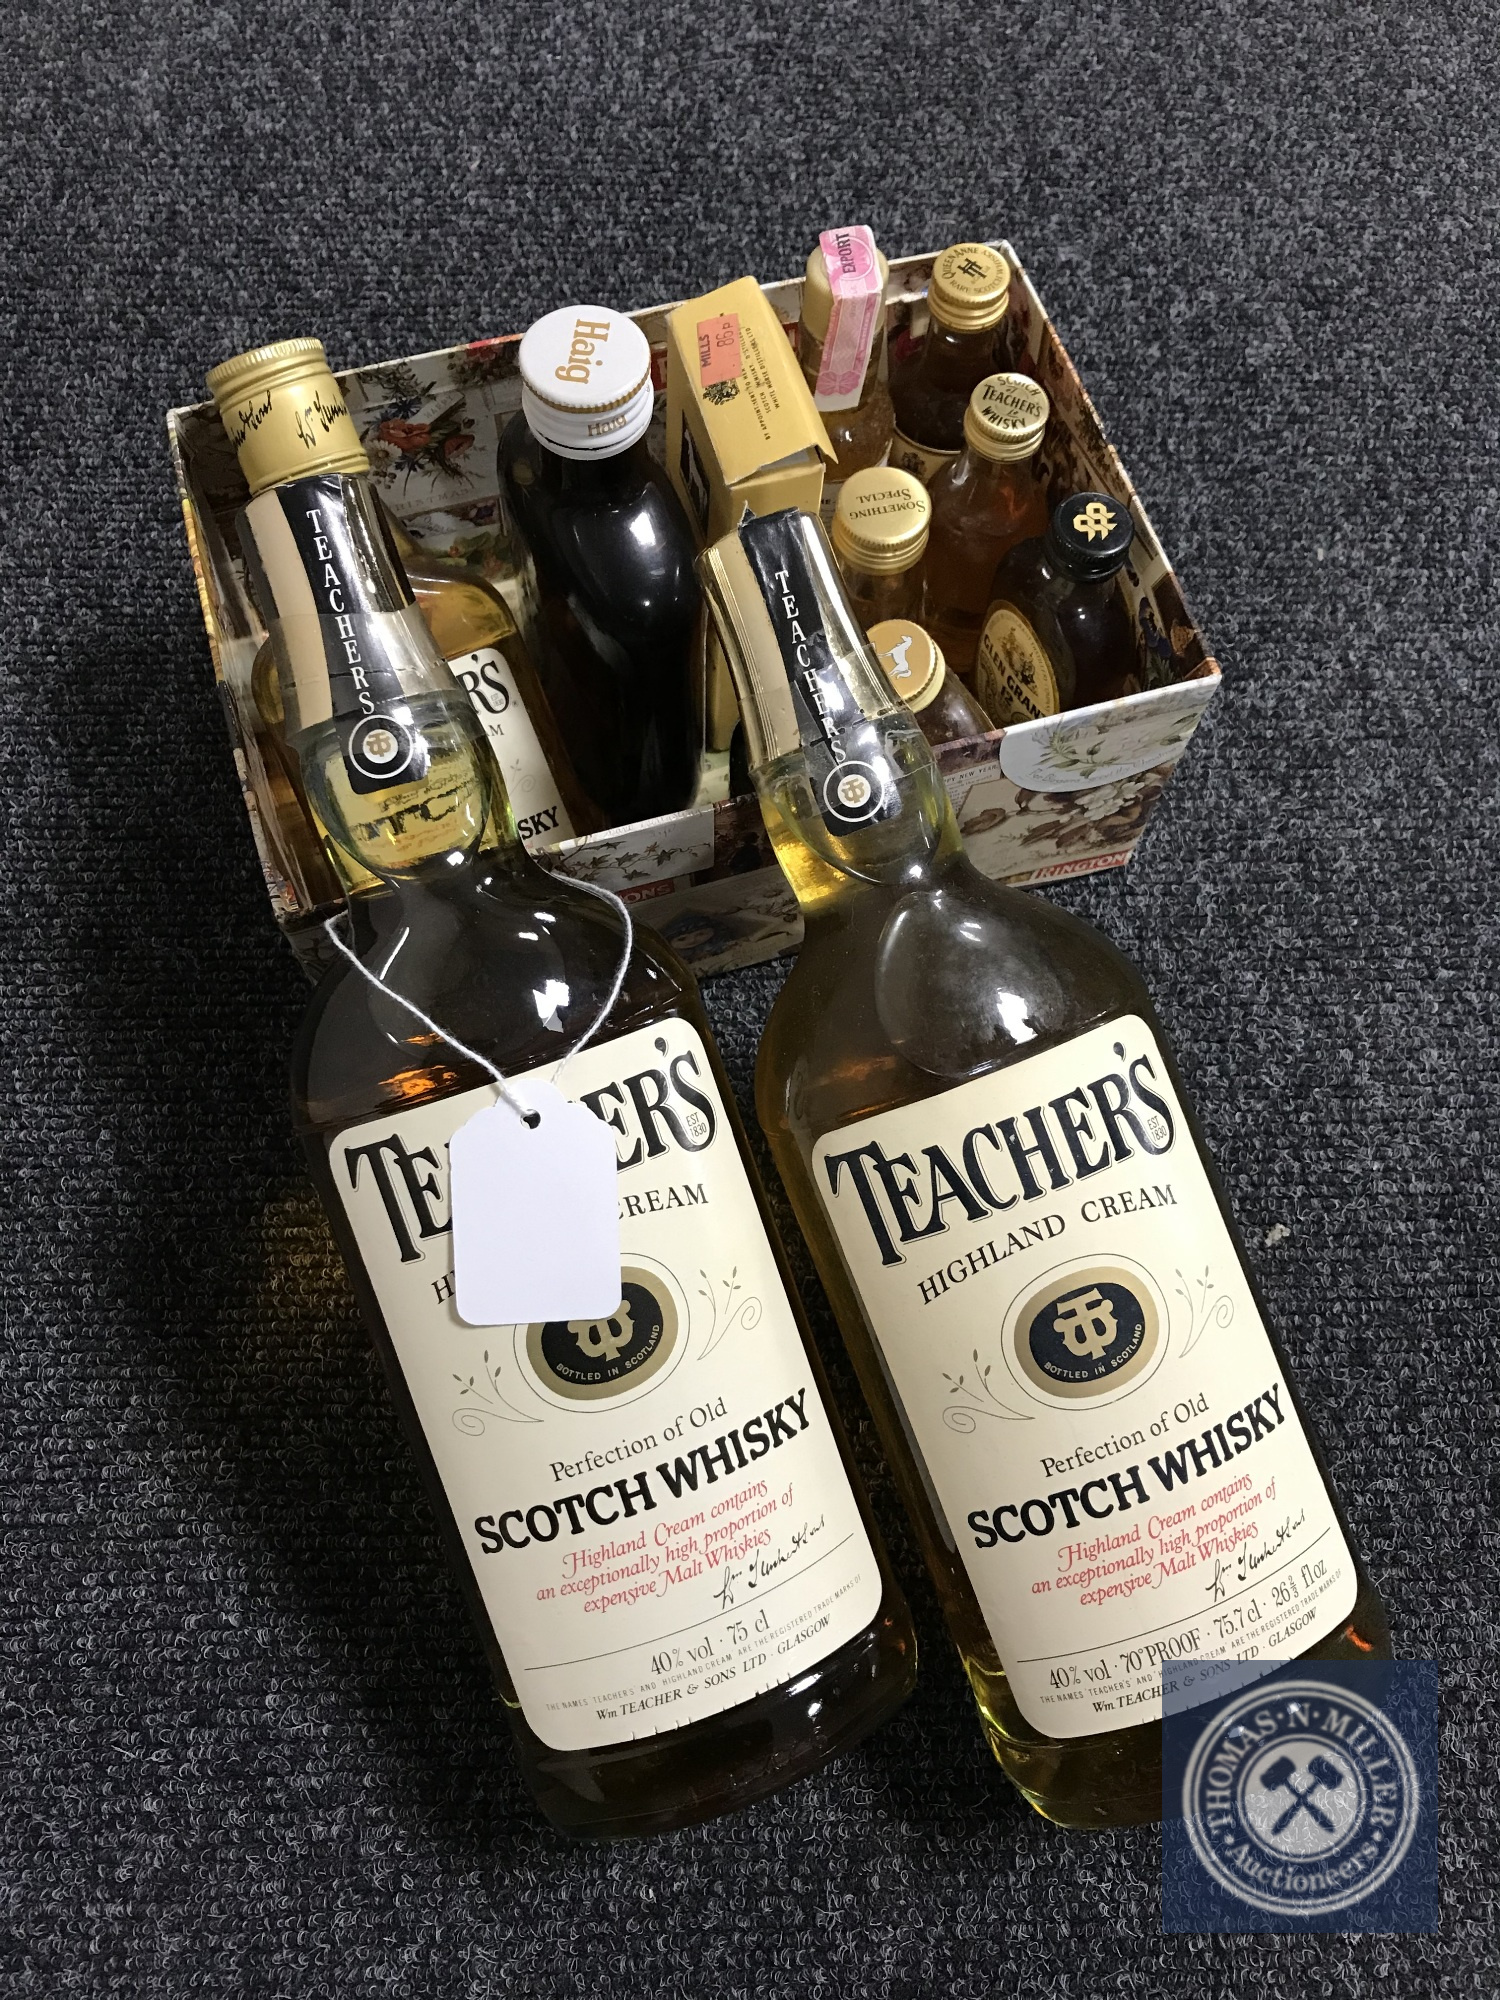 Lot 3 - Two 75cl of Teacher's Scotch Whisky together with a box containing two 18cl bottles of whisky and